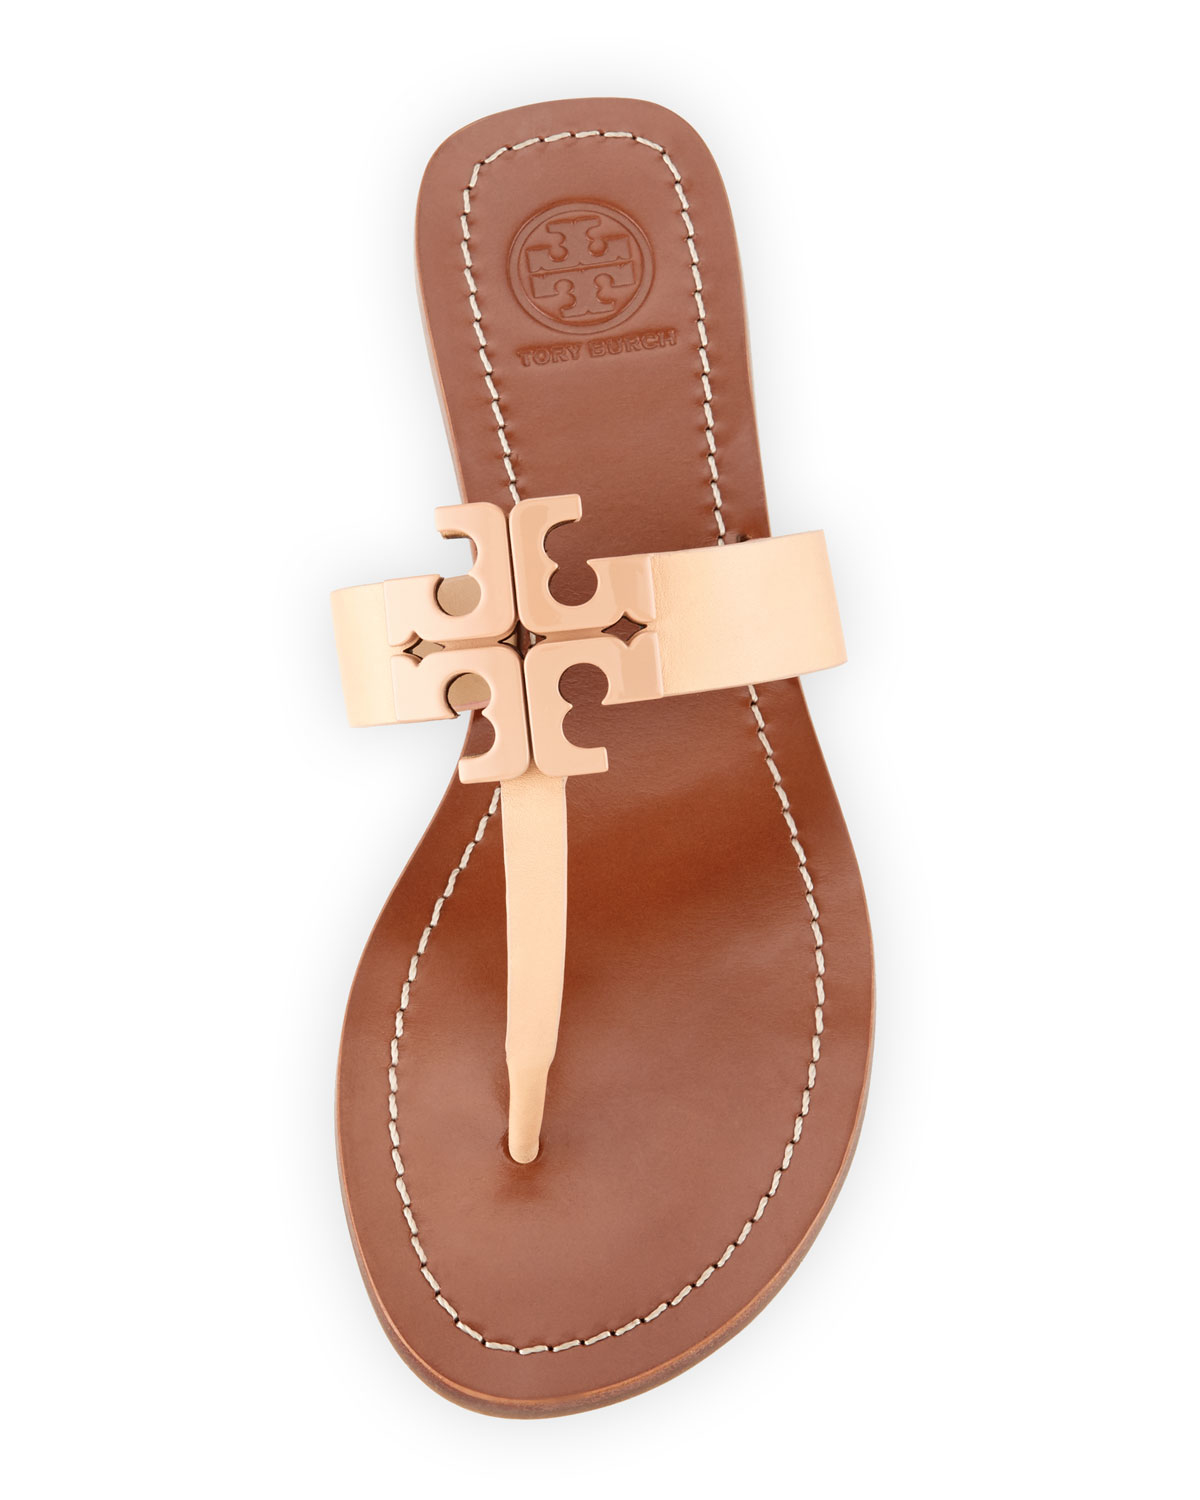 c82acb9468dc Lyst - Tory Burch Moore 2 Leather Thong Sandals in Natural